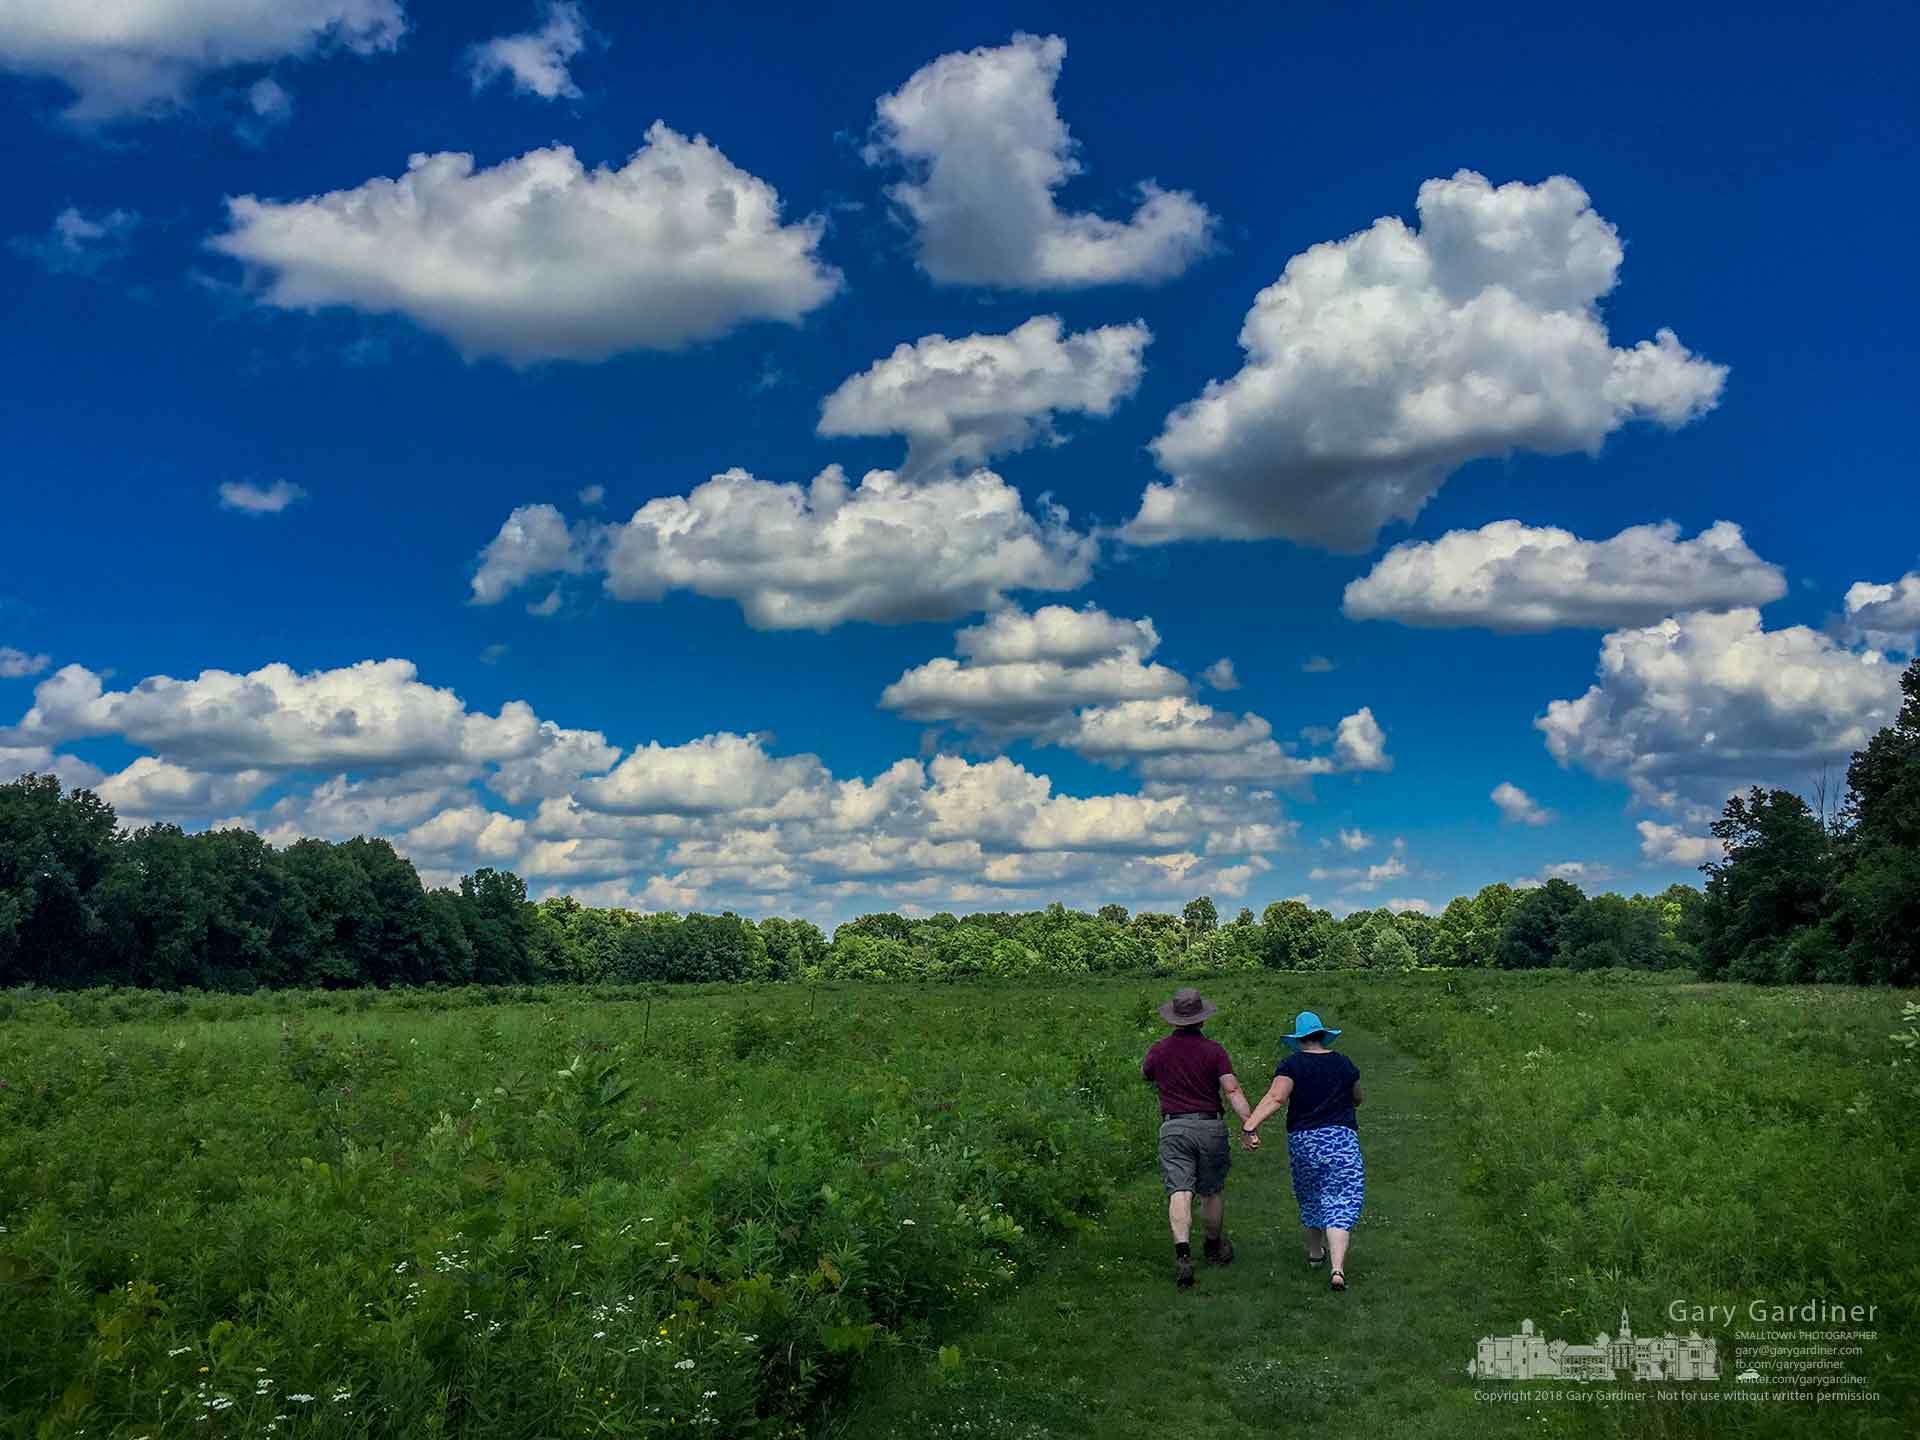 A couple walks hand-in-hand along a trail through Sharon Woods Park on a breezy Sunday afternoon. My FinalPhoto for June 24, 2018.